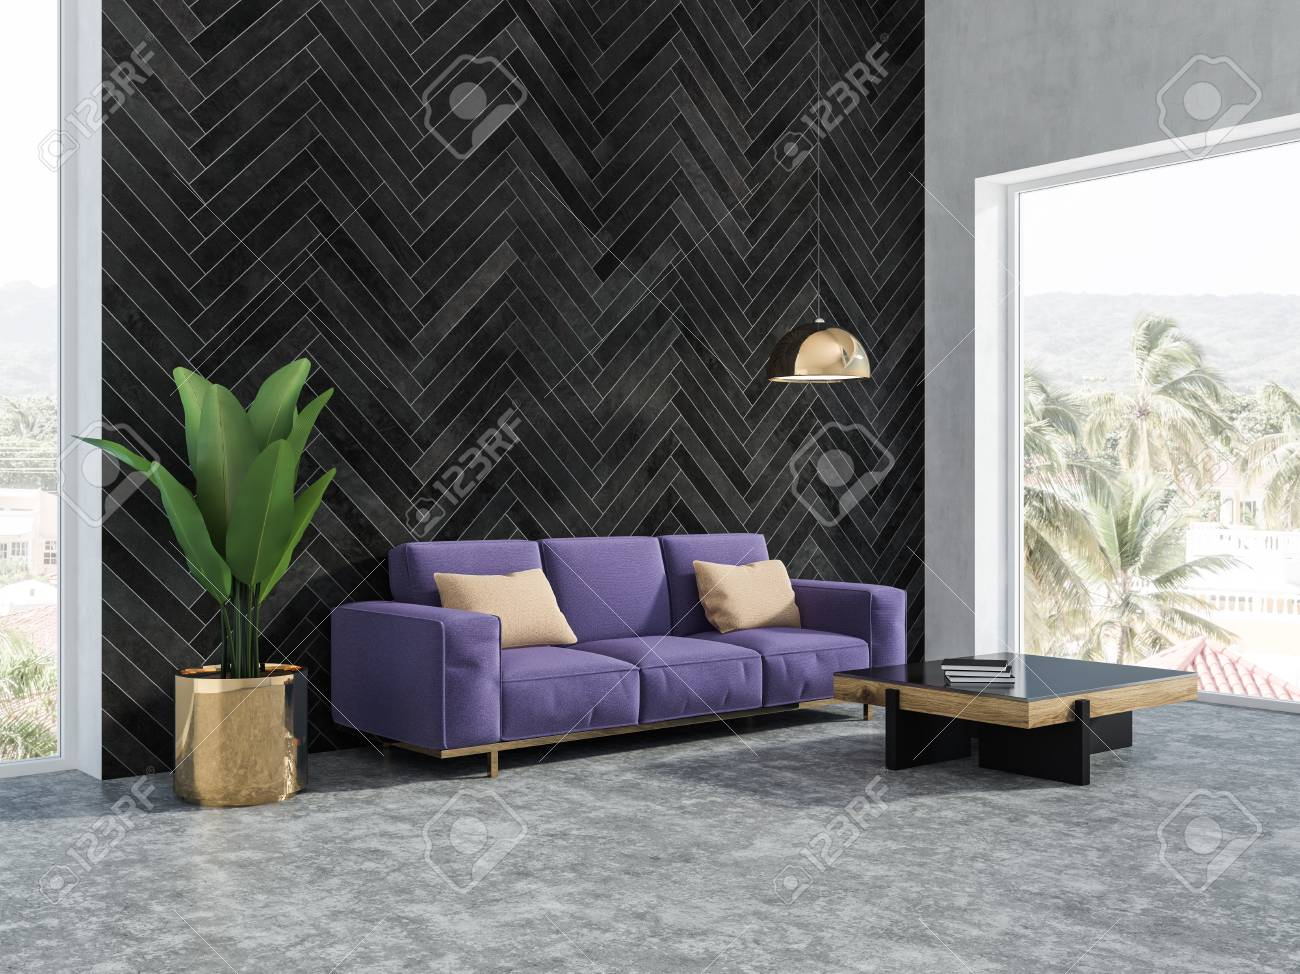 Awe Inspiring Black Wood Living Room Interior With A Concrete Floor A Purple Theyellowbook Wood Chair Design Ideas Theyellowbookinfo